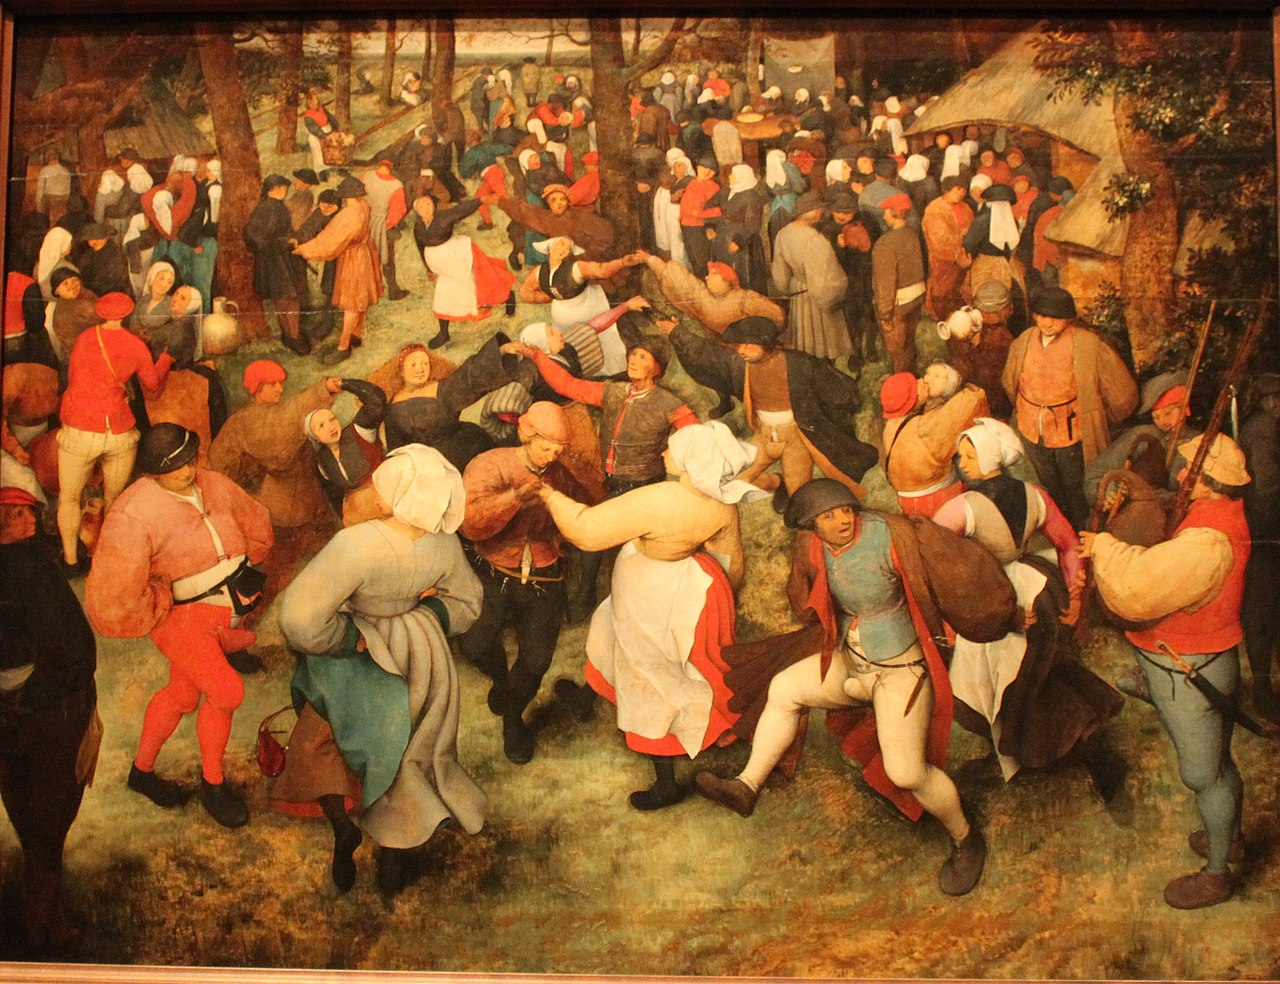 File:The Wedding Dance.JPG - Wikimedia Commons